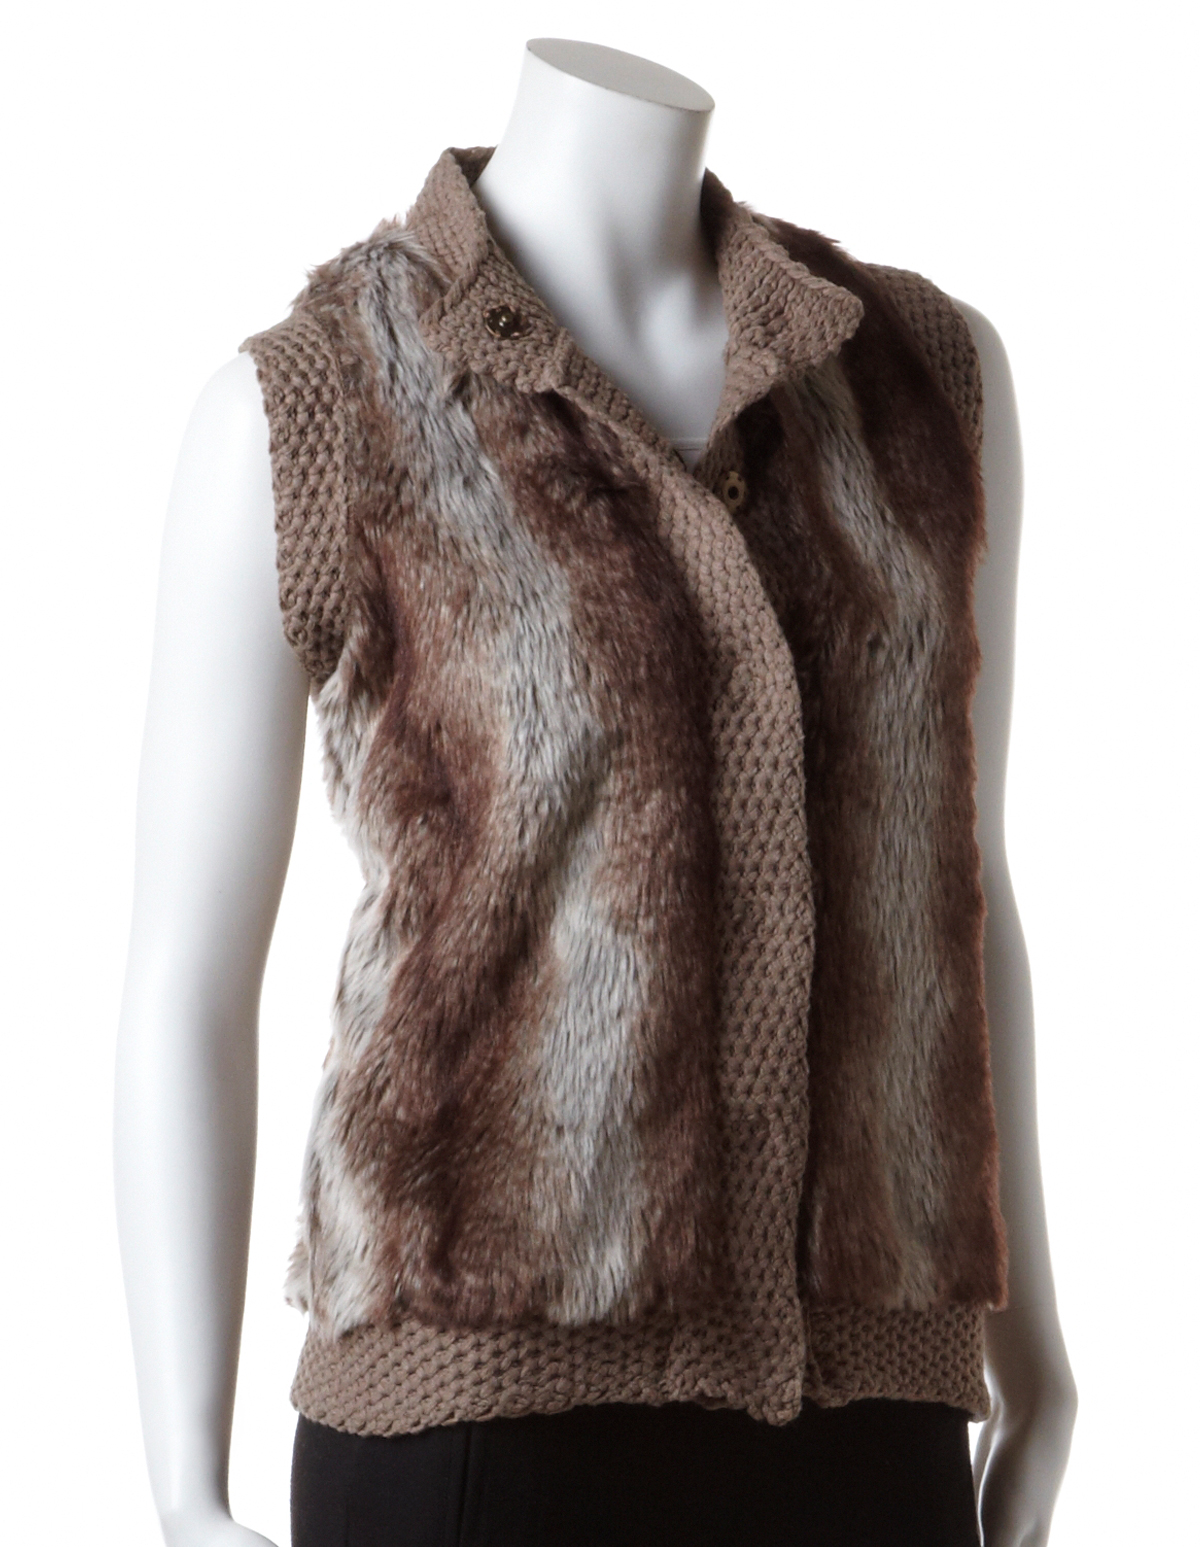 Shop a great selection of Vests at Nordstrom Rack. Find designer Vests up to 70% off and get free shipping on orders over $